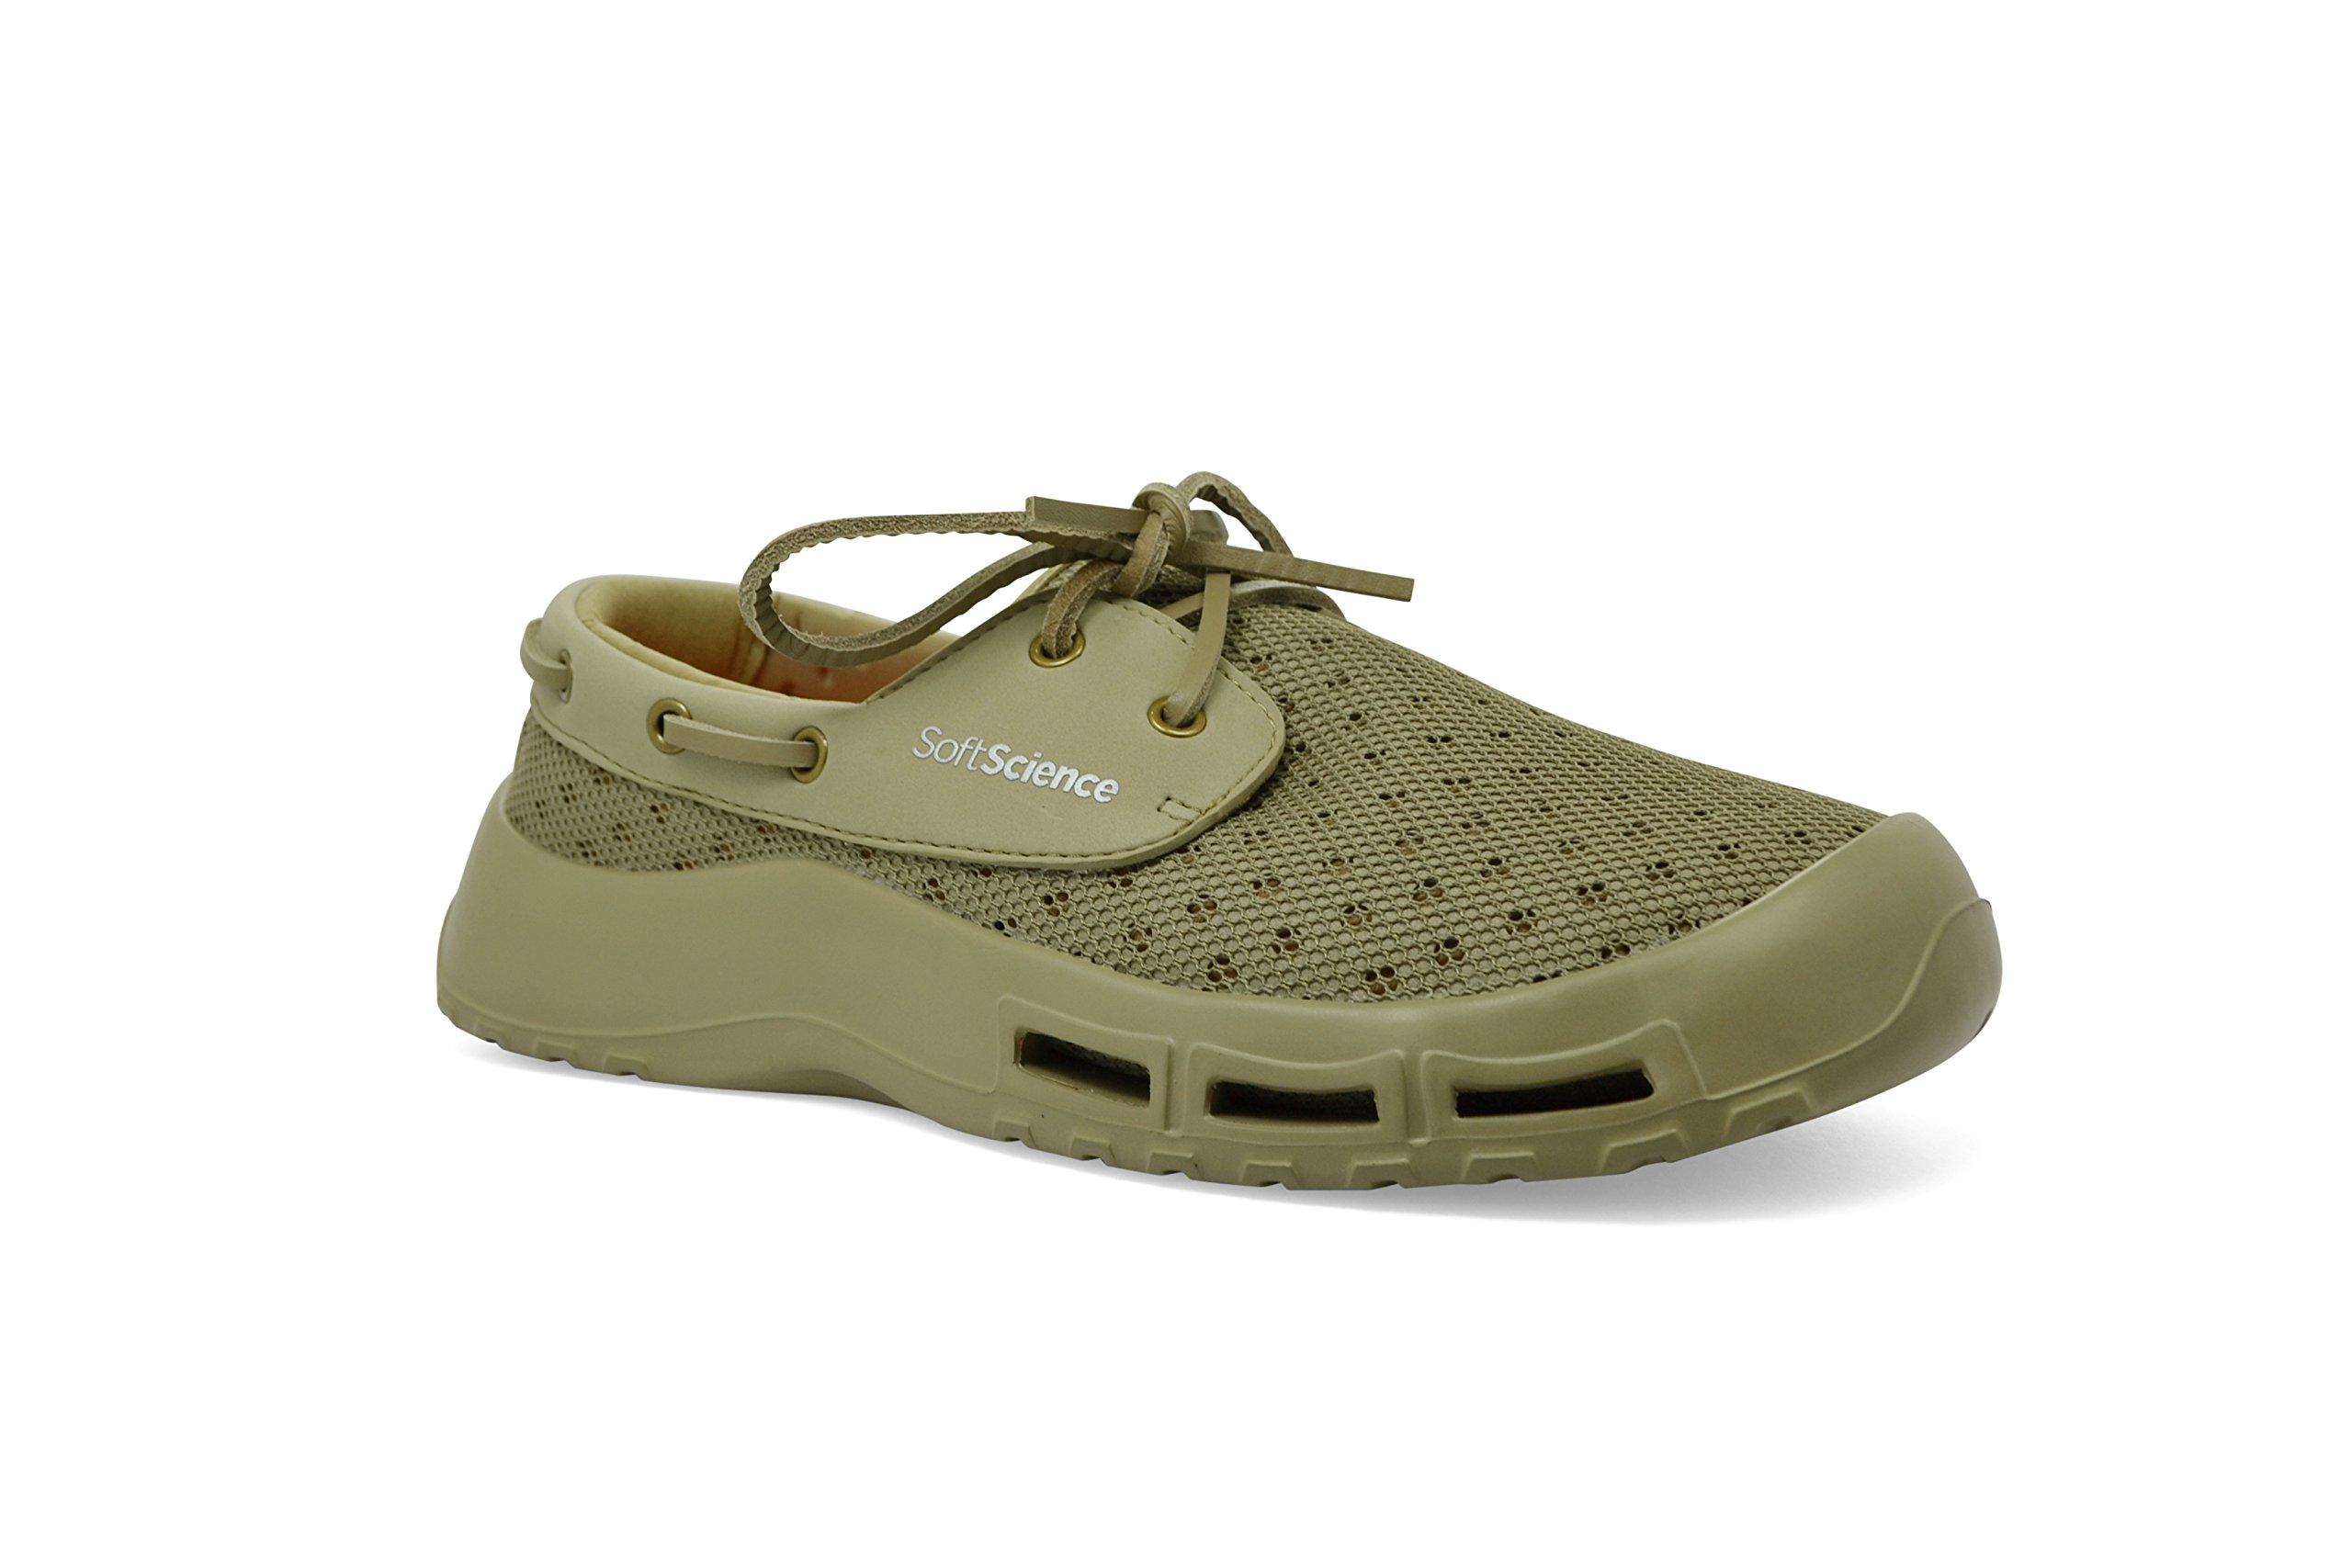 SoftScience The Fin Men's Boating/Fishing Shoes - Khaki, Size 16 by SoftScience